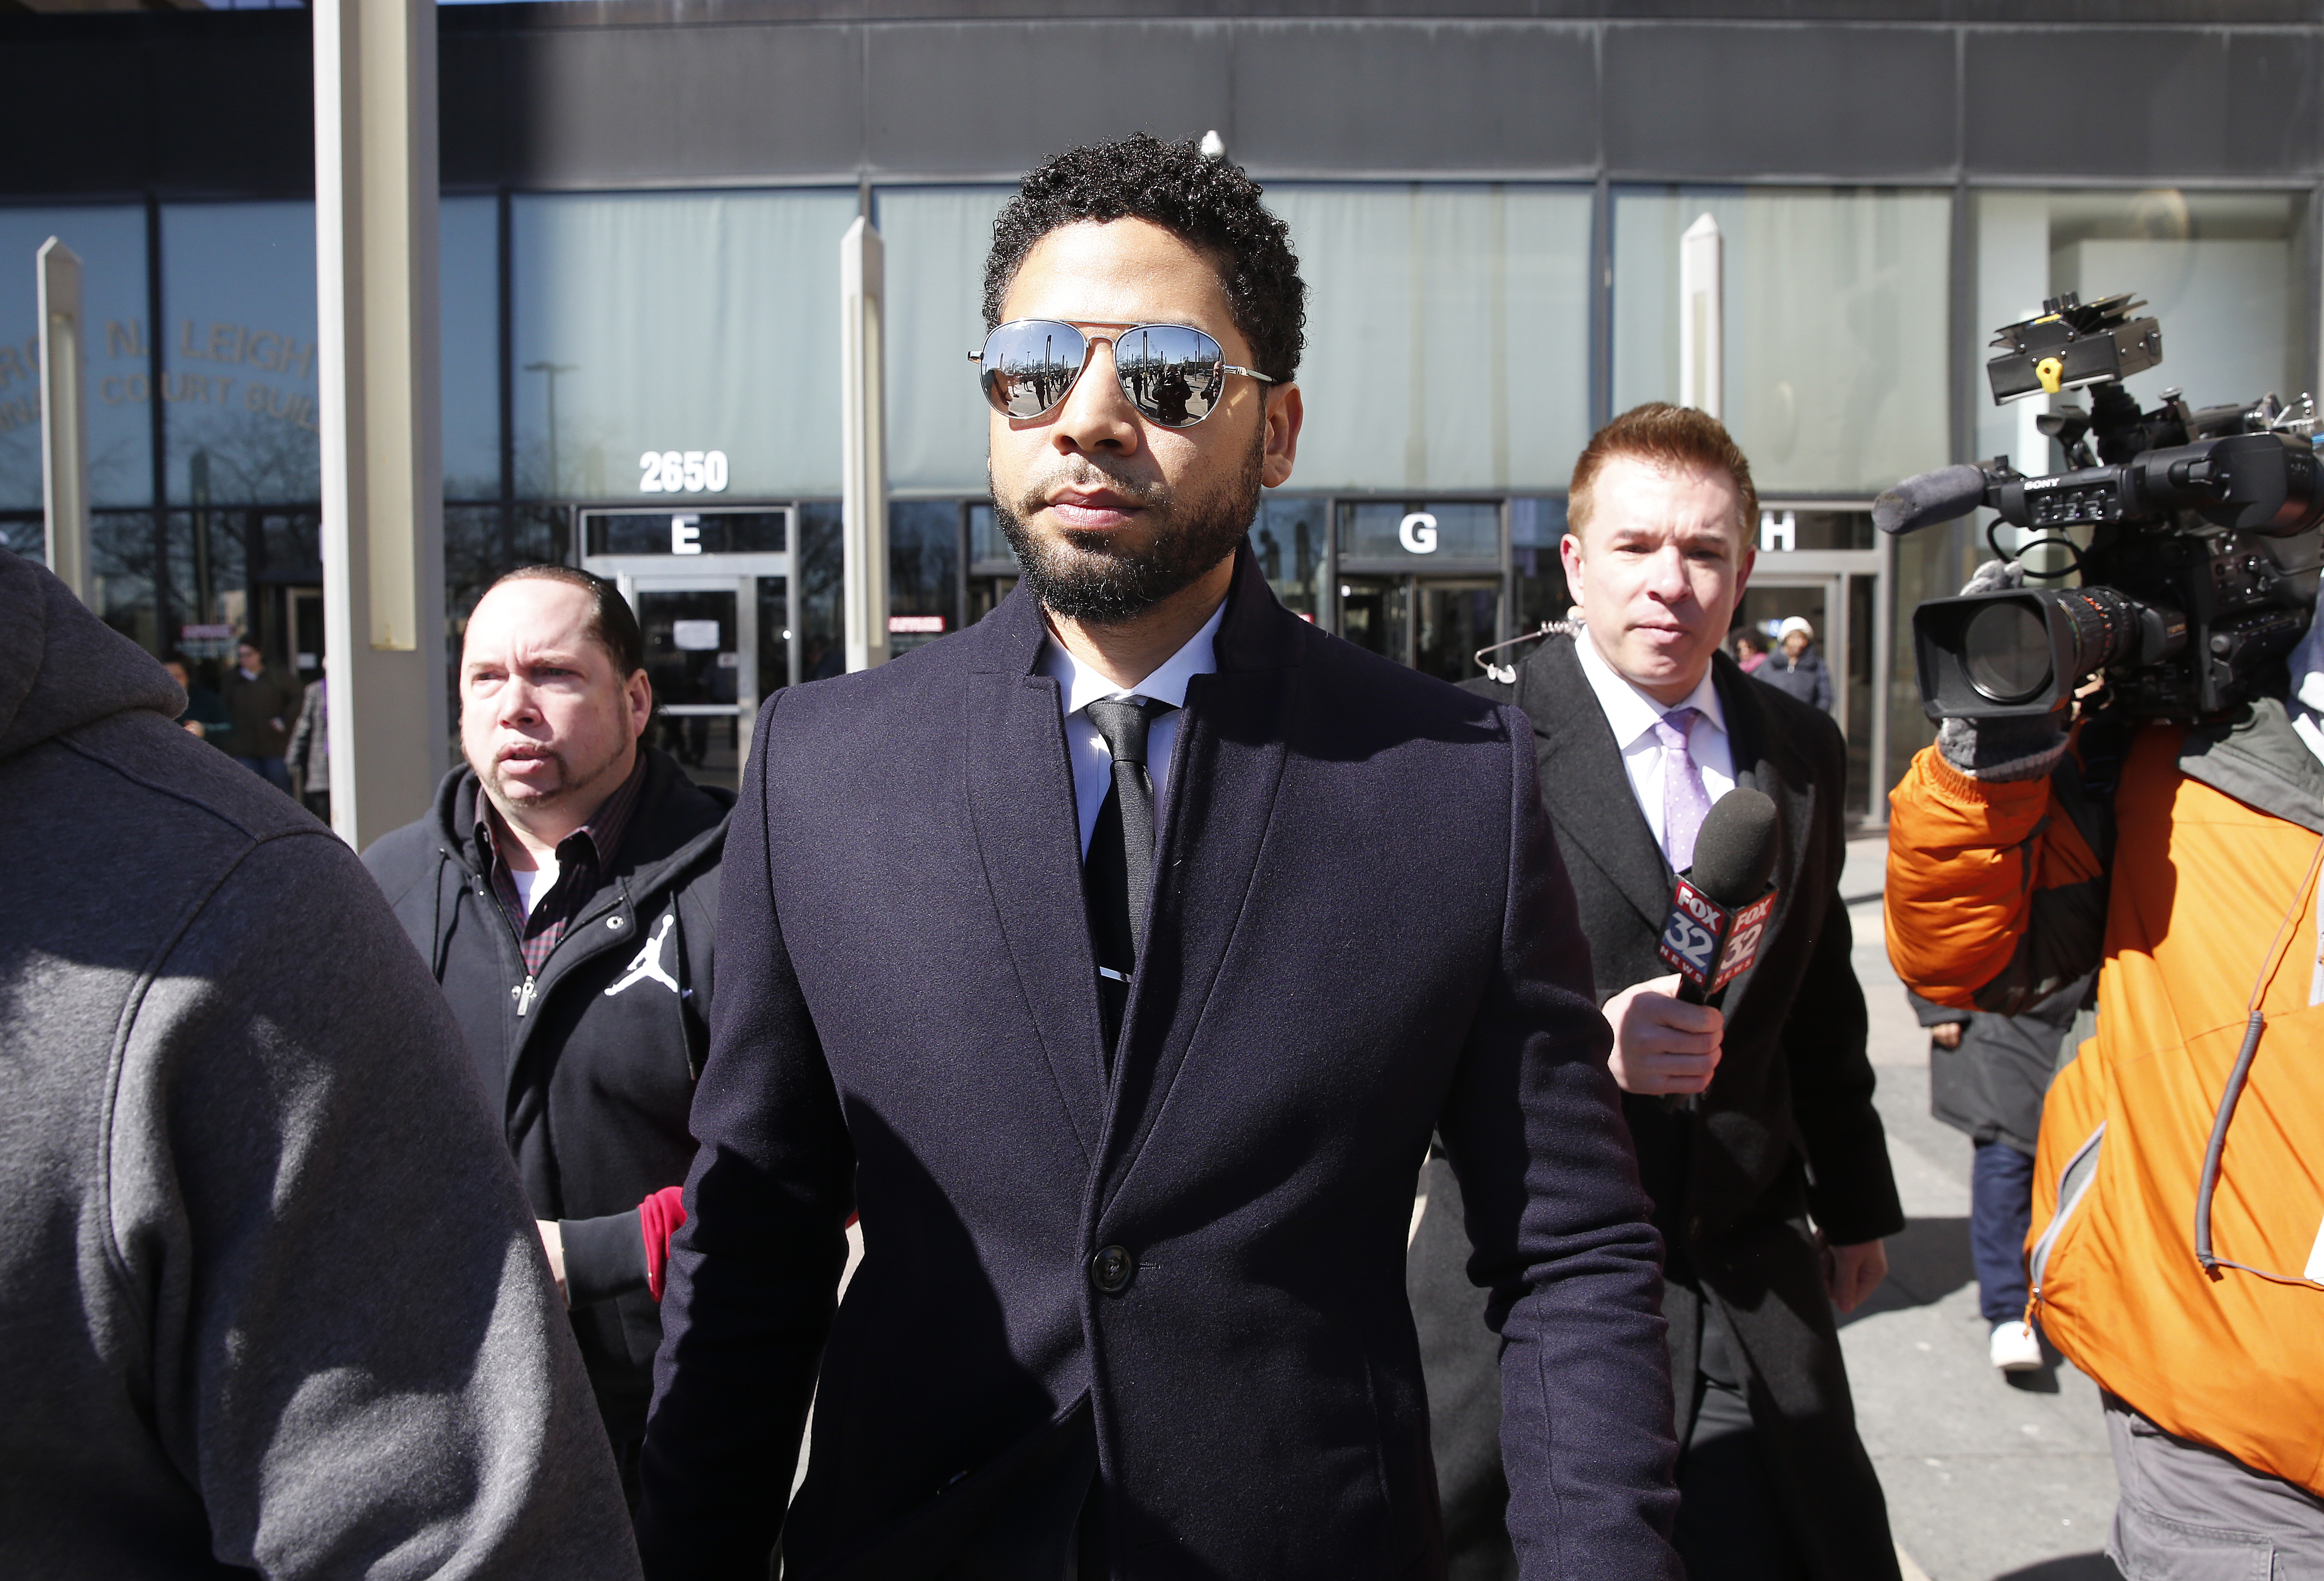 Actor Jussie Smollett leaves the Leighton Courthouse after his court appearance on March 26, 2019 in Chicago, Illinois.